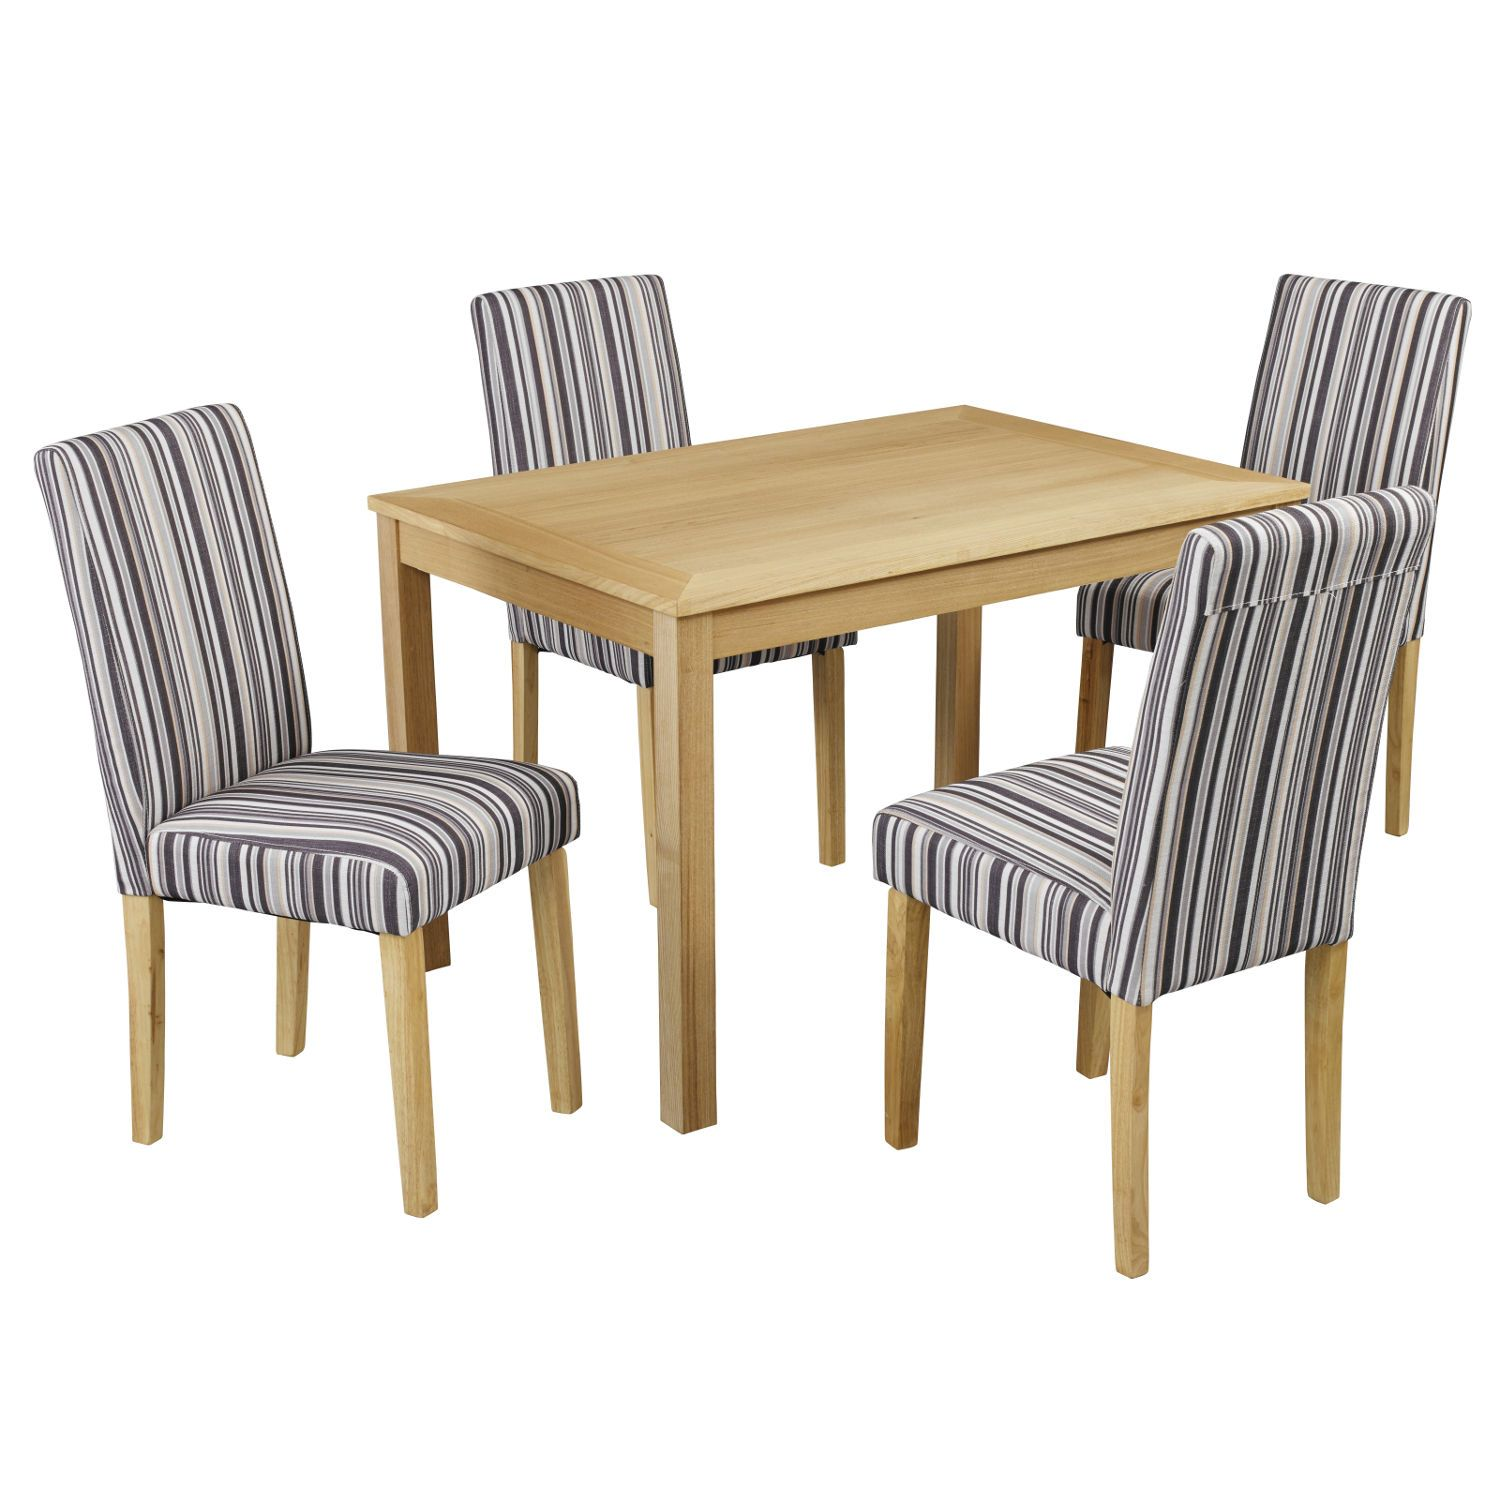 Oakridge Dining Set with 4 Lorenzo Chairs Only £242.99 On bedroomfurnitureworld.co.uk - http://bit.ly/1Kl4fKr #Furniture